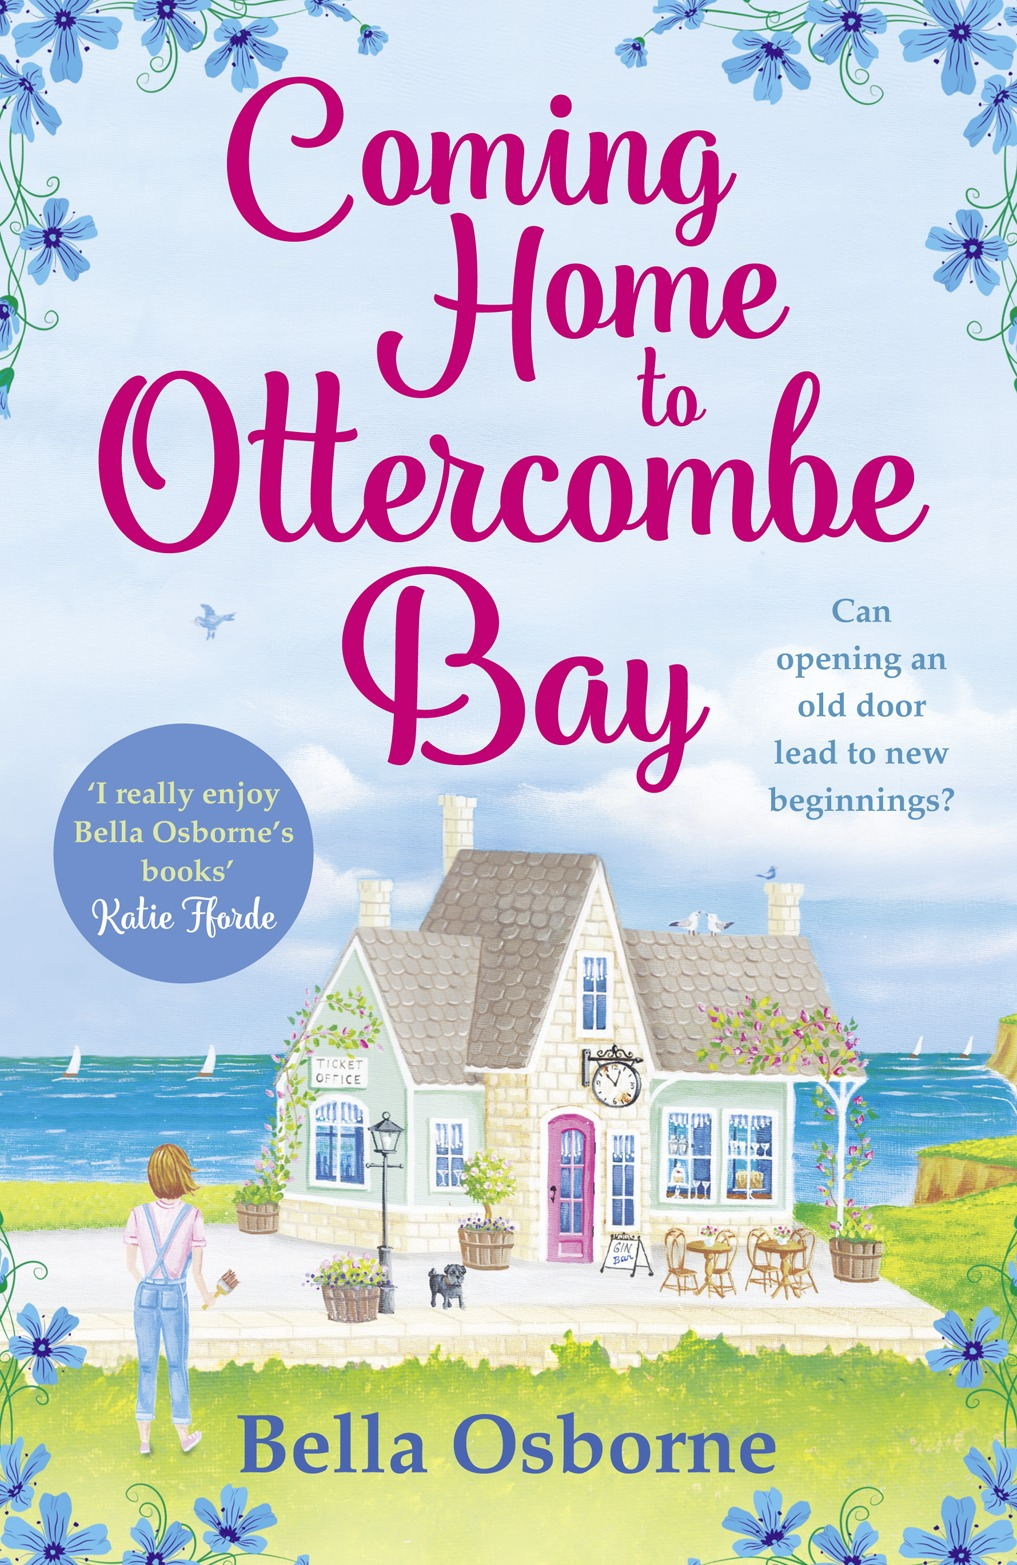 Bella Osborne Coming Home to Ottercombe Bay: The laugh out loud romantic comedy of the year зеркало titania двухстороннее на ножке планет нейлс 160 мм